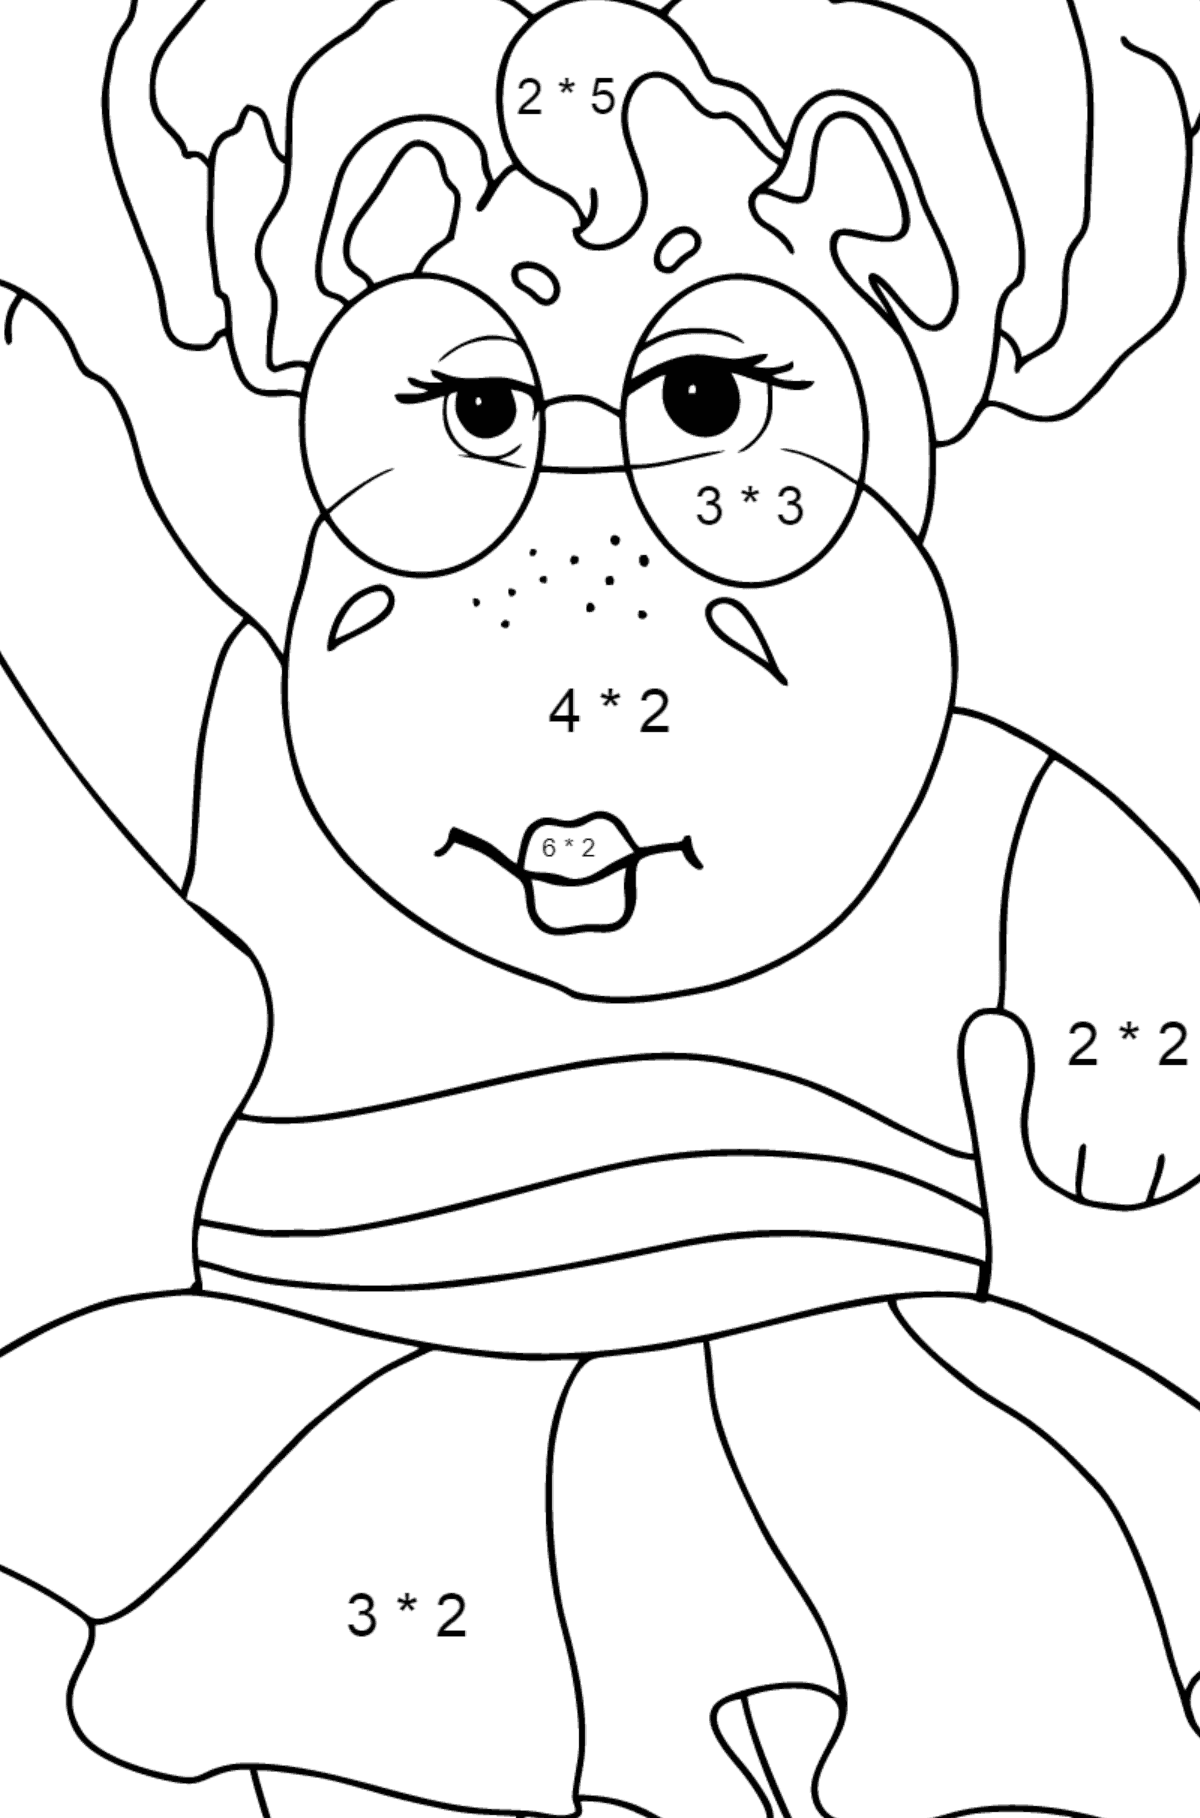 Coloring Page - A Hippo is Dancing in Sunglasses for Kids  - Color by Number Multiplication